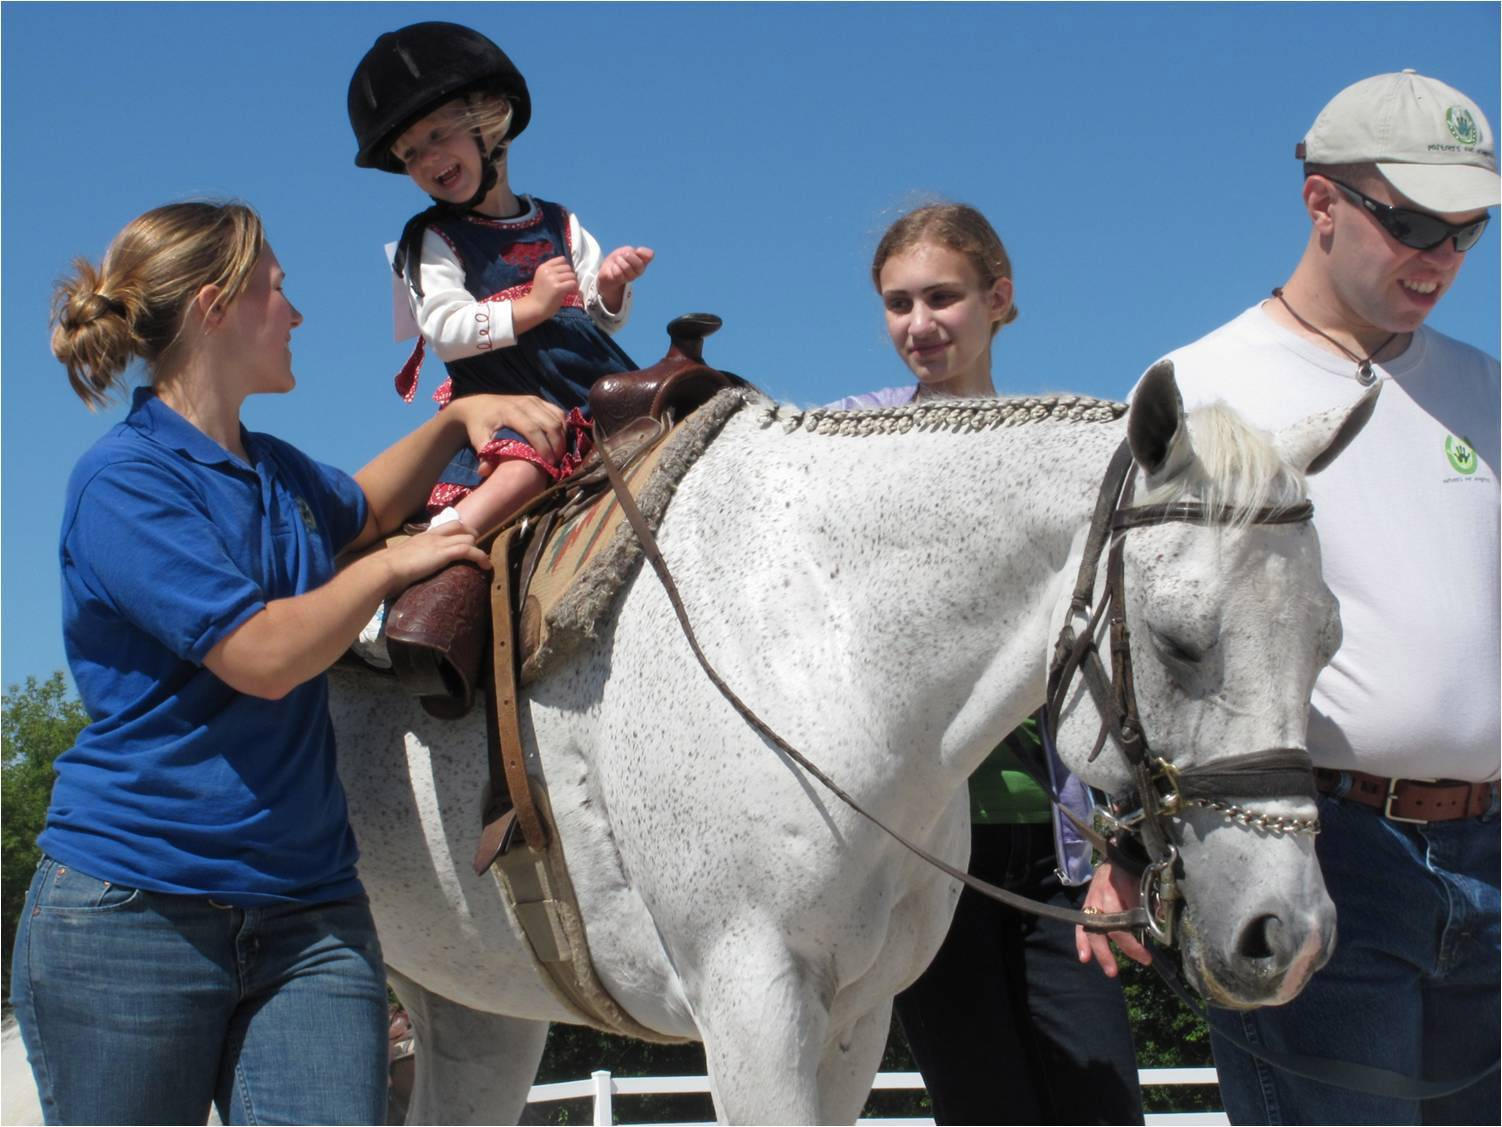 Volunteers work to make sure rider Brooke Smith, of Bristol, Wisconsin, has a safe and positive experience during her therapeutic riding session at Partners for Progress.